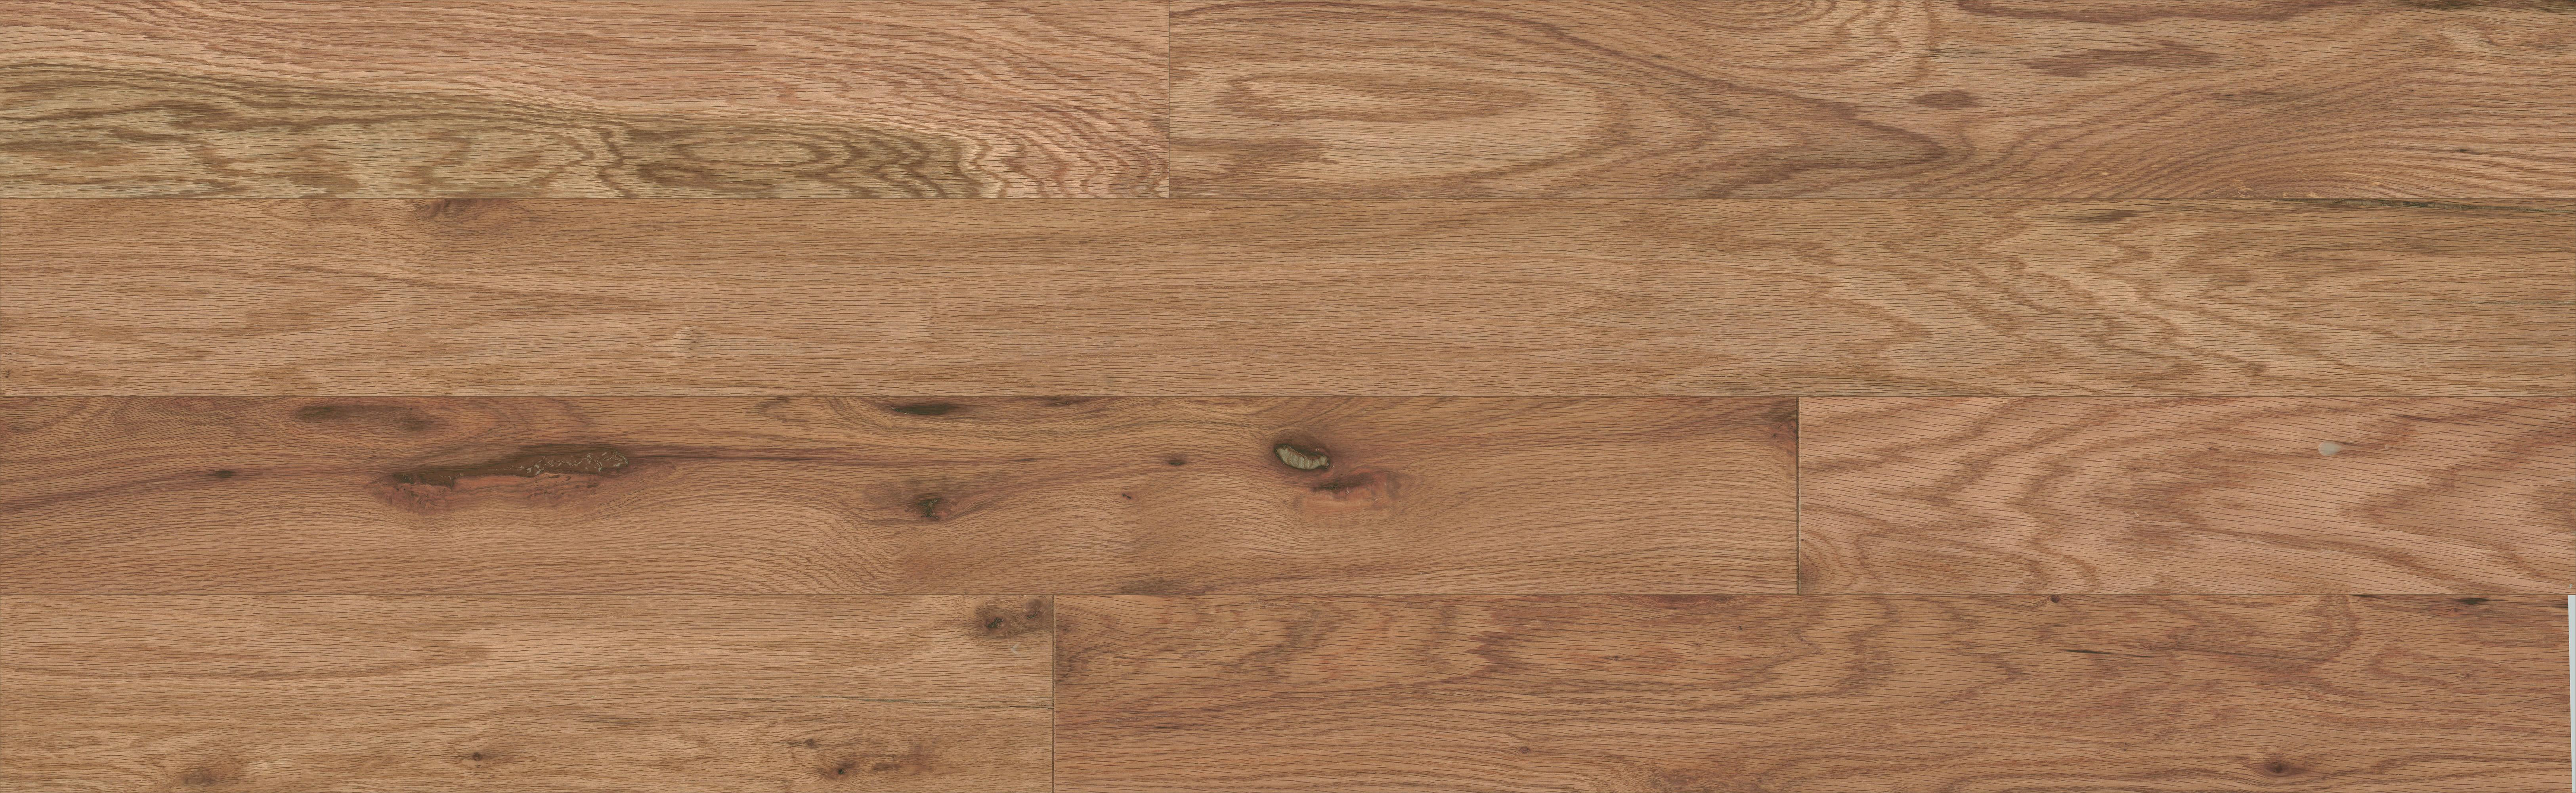 how much does oak hardwood flooring cost of mullican ridgecrest red oak natural 1 2 thick 5 wide engineered pertaining to mullican ridgecrest red oak natural 1 2 thick 5 wide engineered hardwood flooring